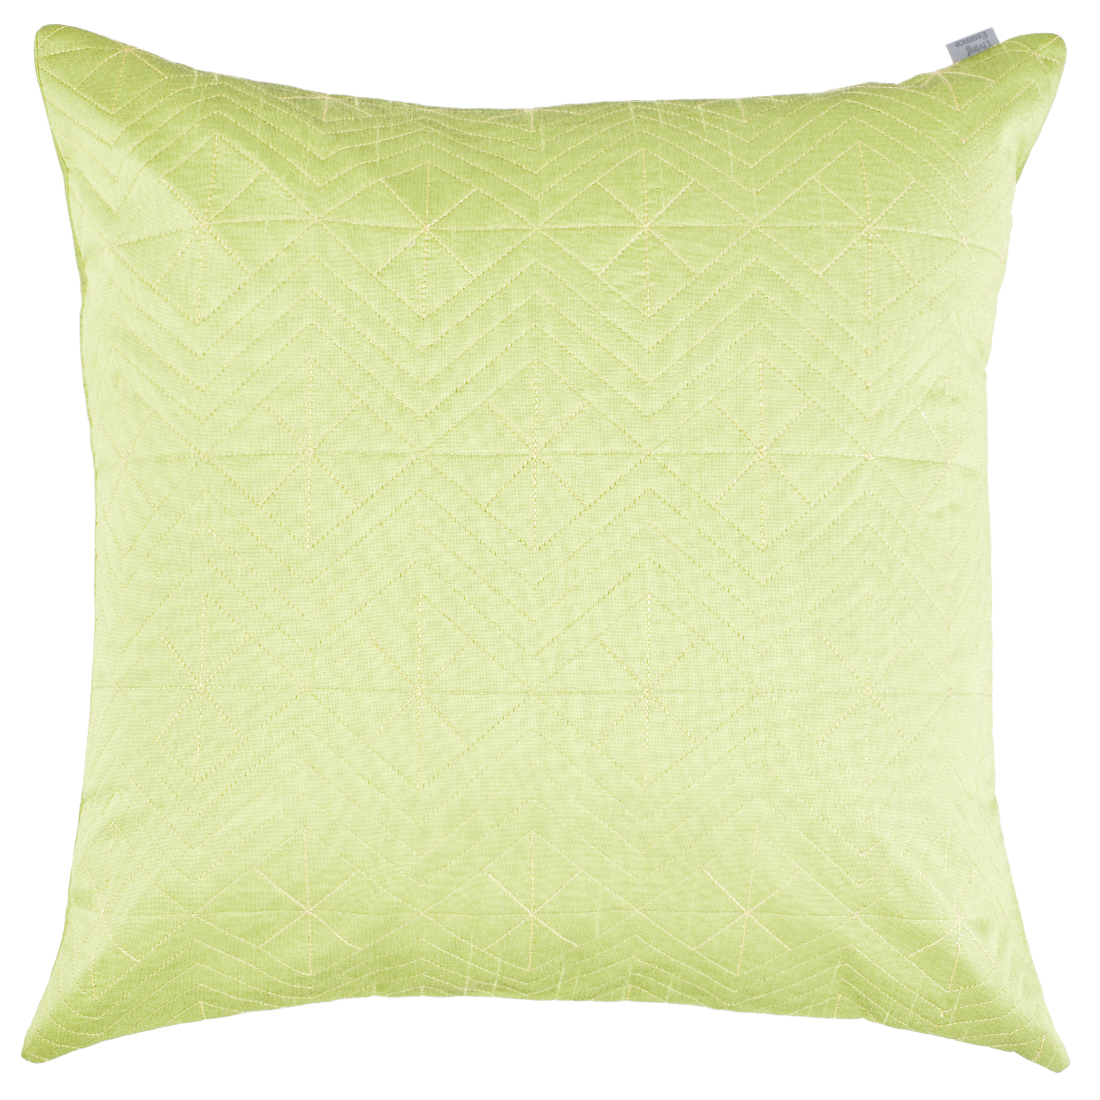 Blossom Polyester Cushion Covers in Green Colour by Living Essence